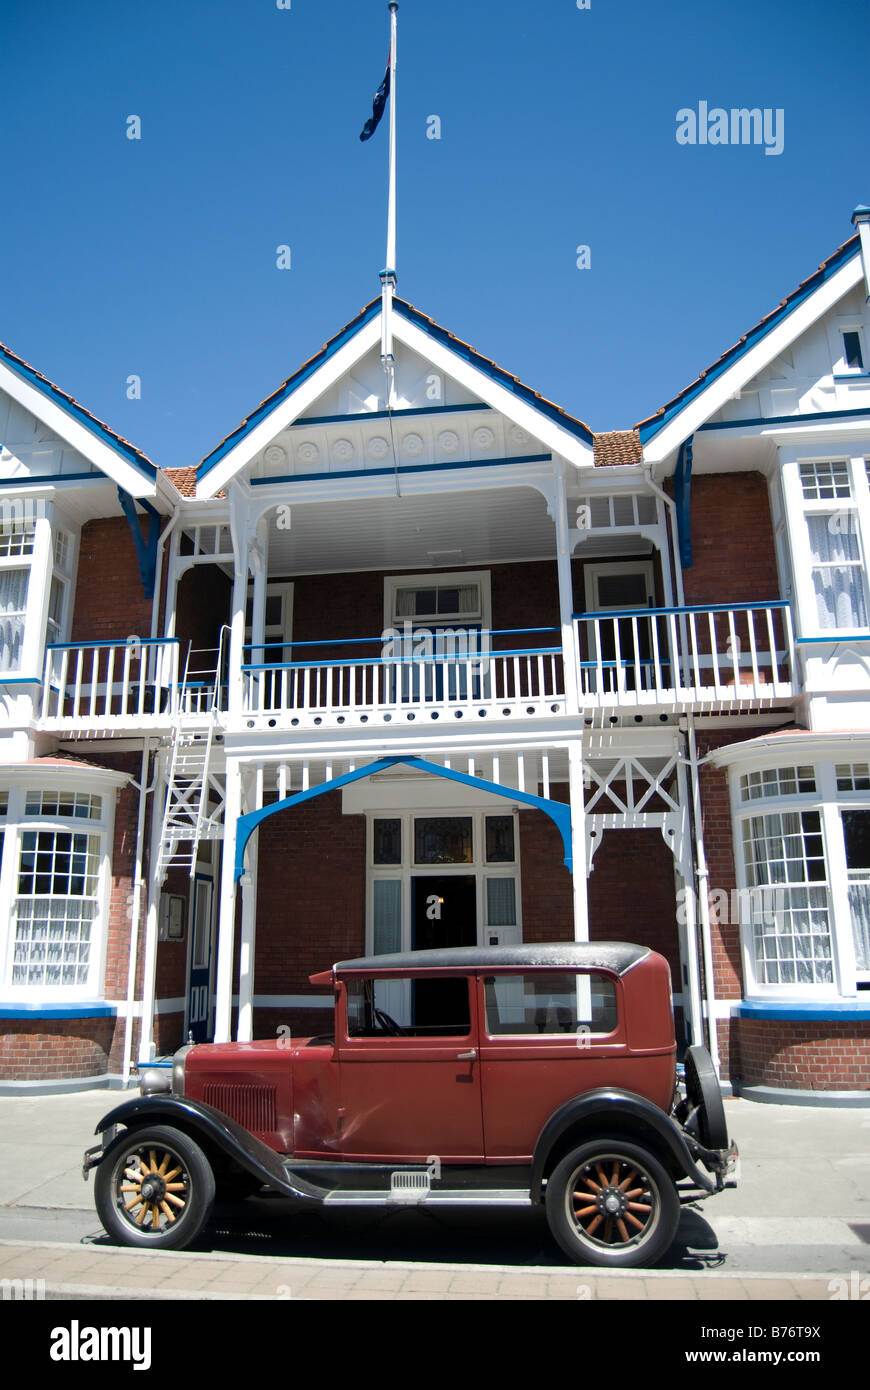 Vintage Erskine car outside Windsor Hotel, Armagh Street, Christchurch, Canterbury, New Zealand - Stock Image